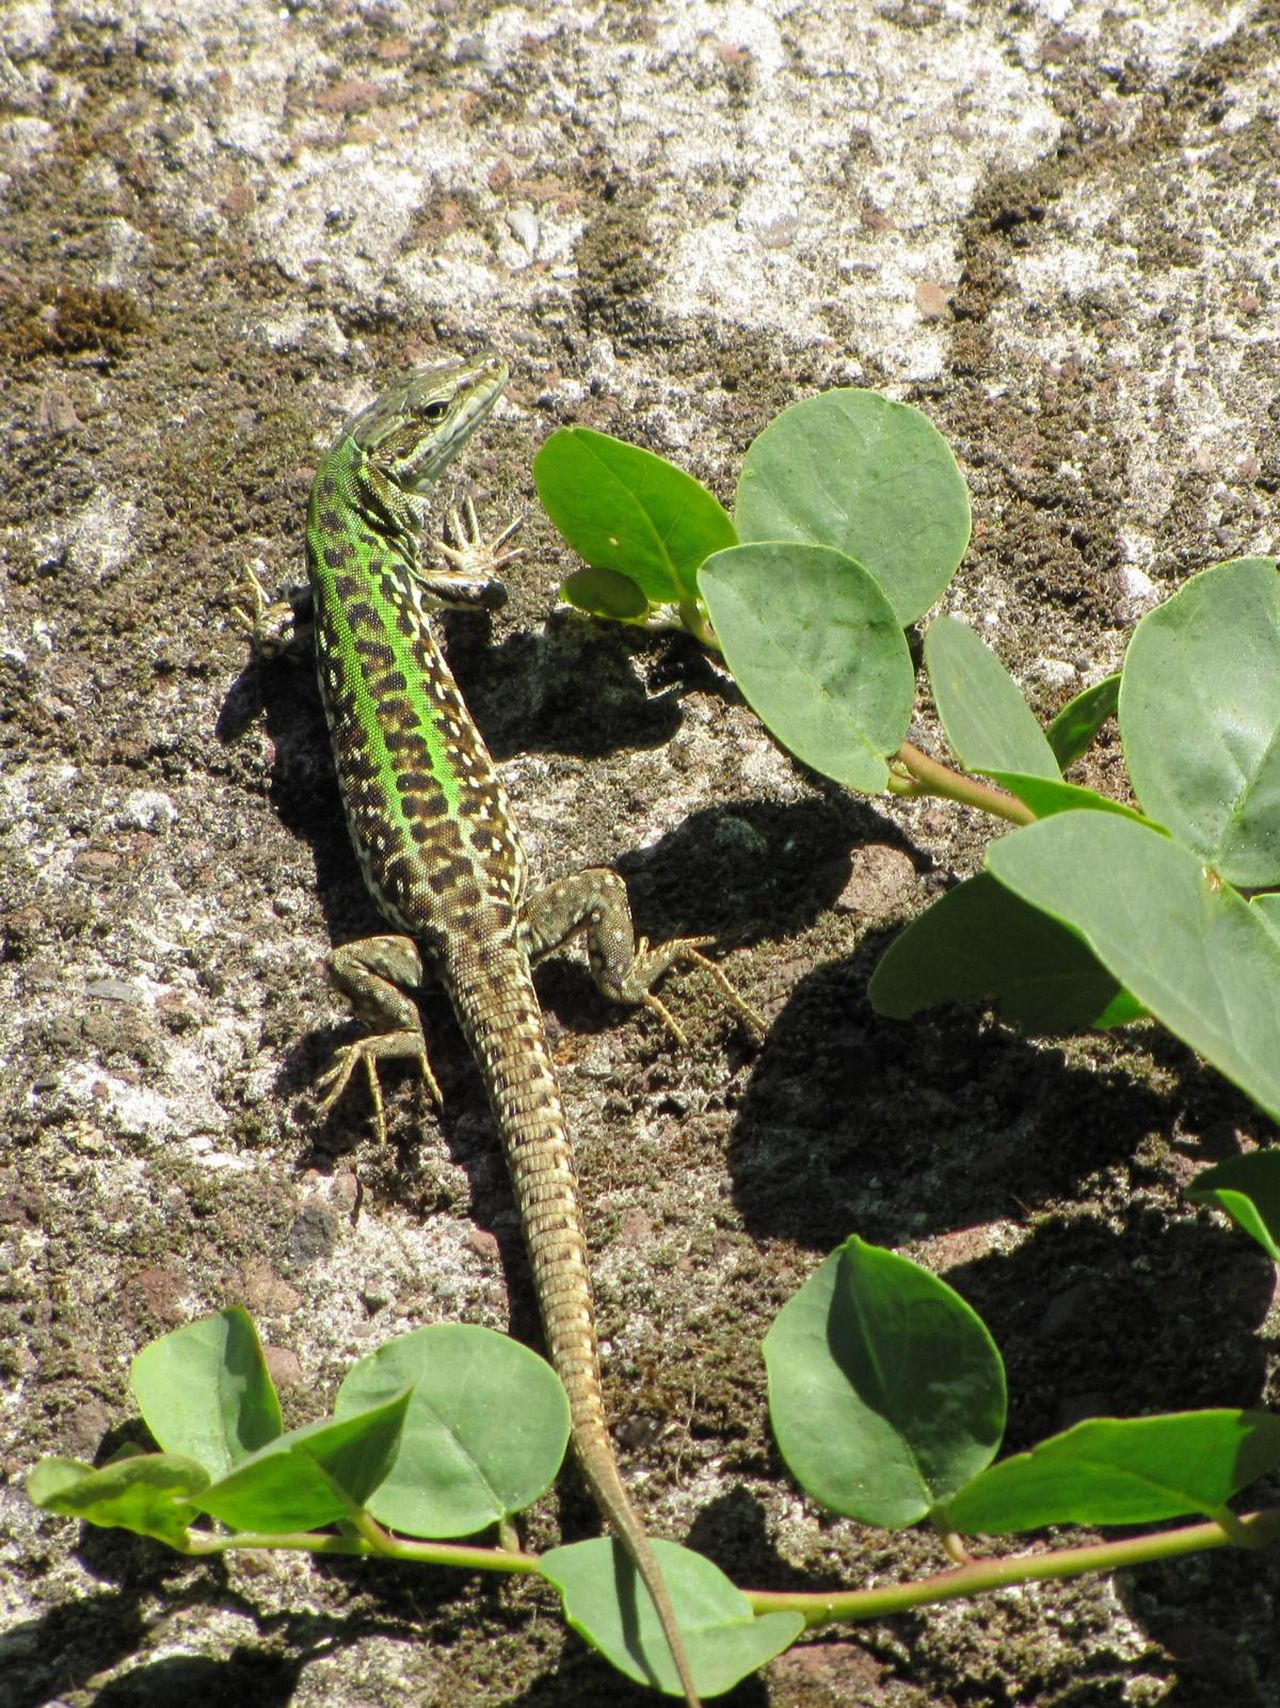 Animal Themes Animal Wildlife Animals In The Wild Beauty In Nature Close-up Day Fragility Green Color Growth Leaf Lizzard Nature No People One Animal Outdoors Plant Sunlight